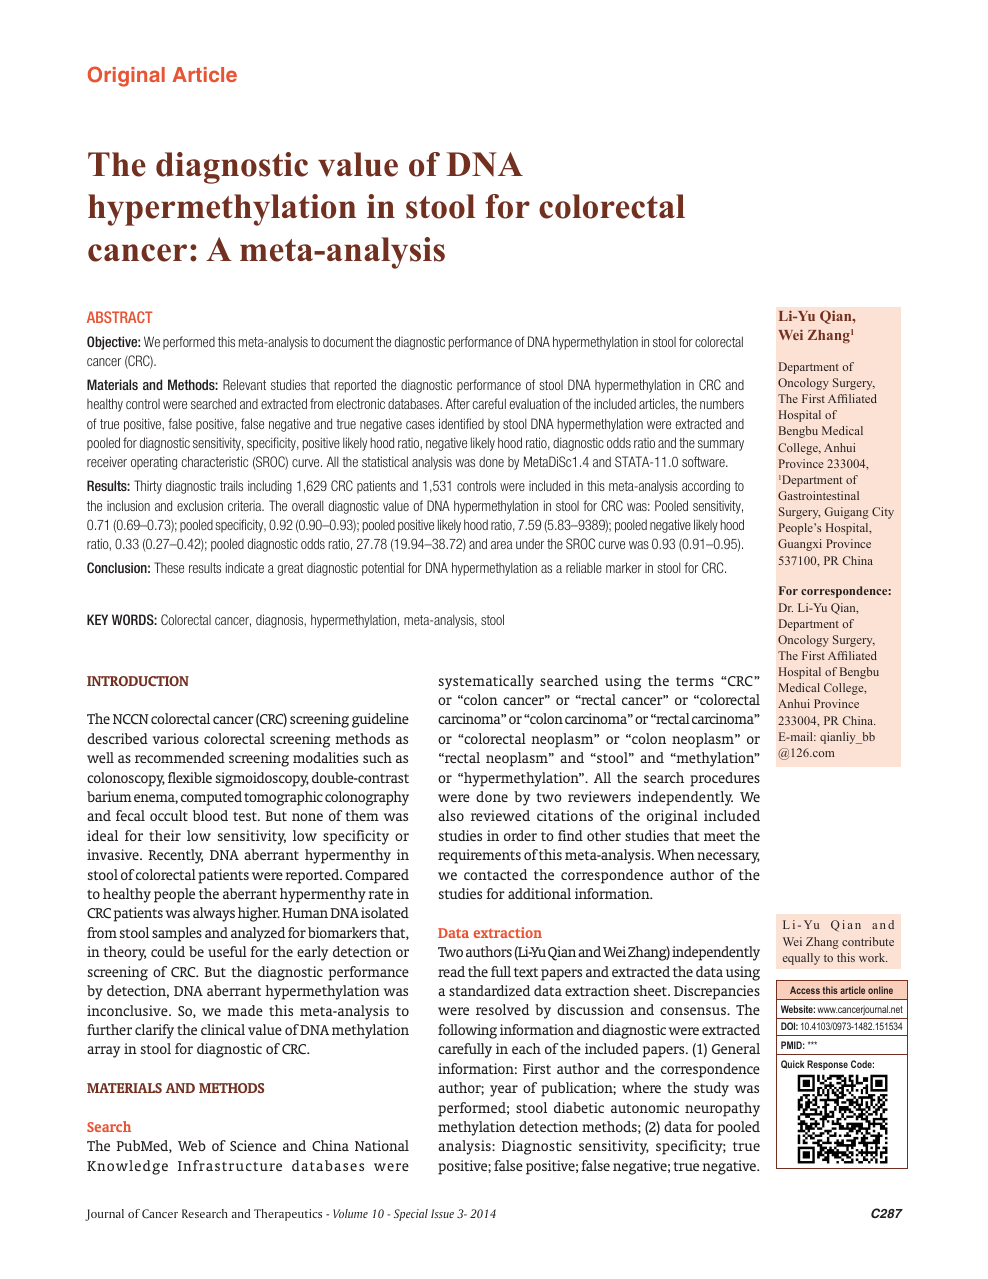 rectal cancer journal articles)